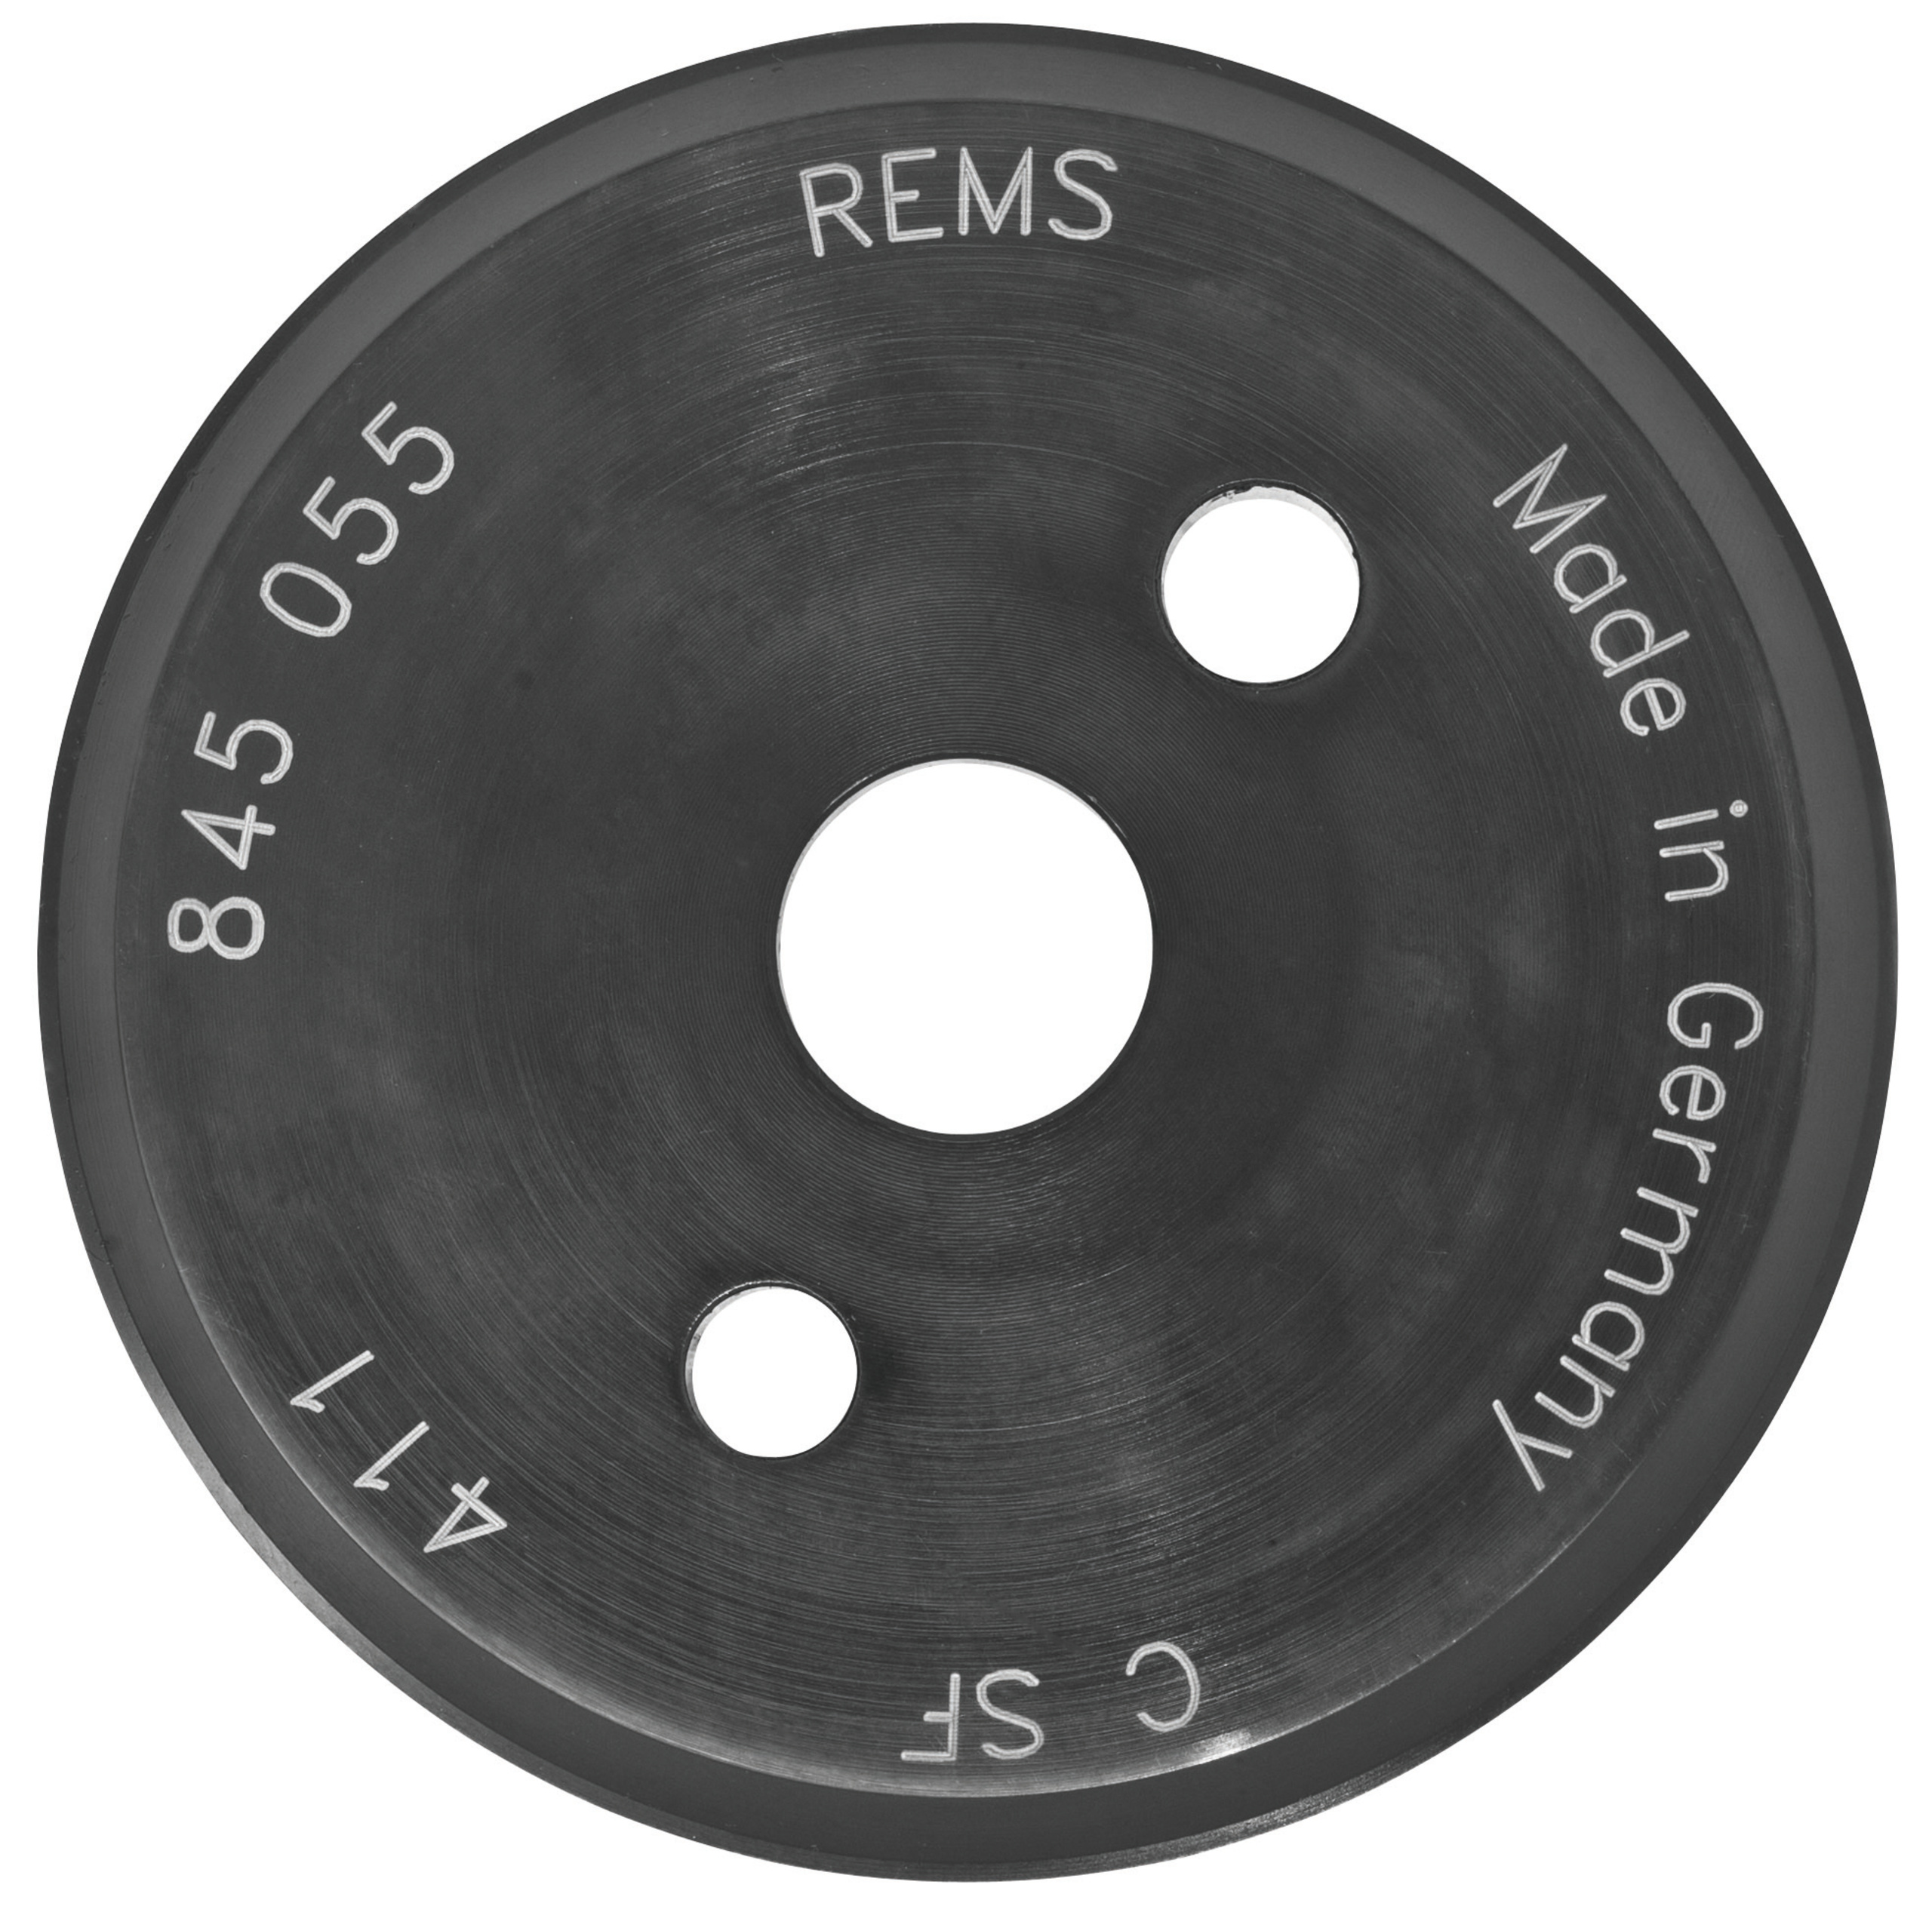 <br/>REMS cutter wheel C-SF